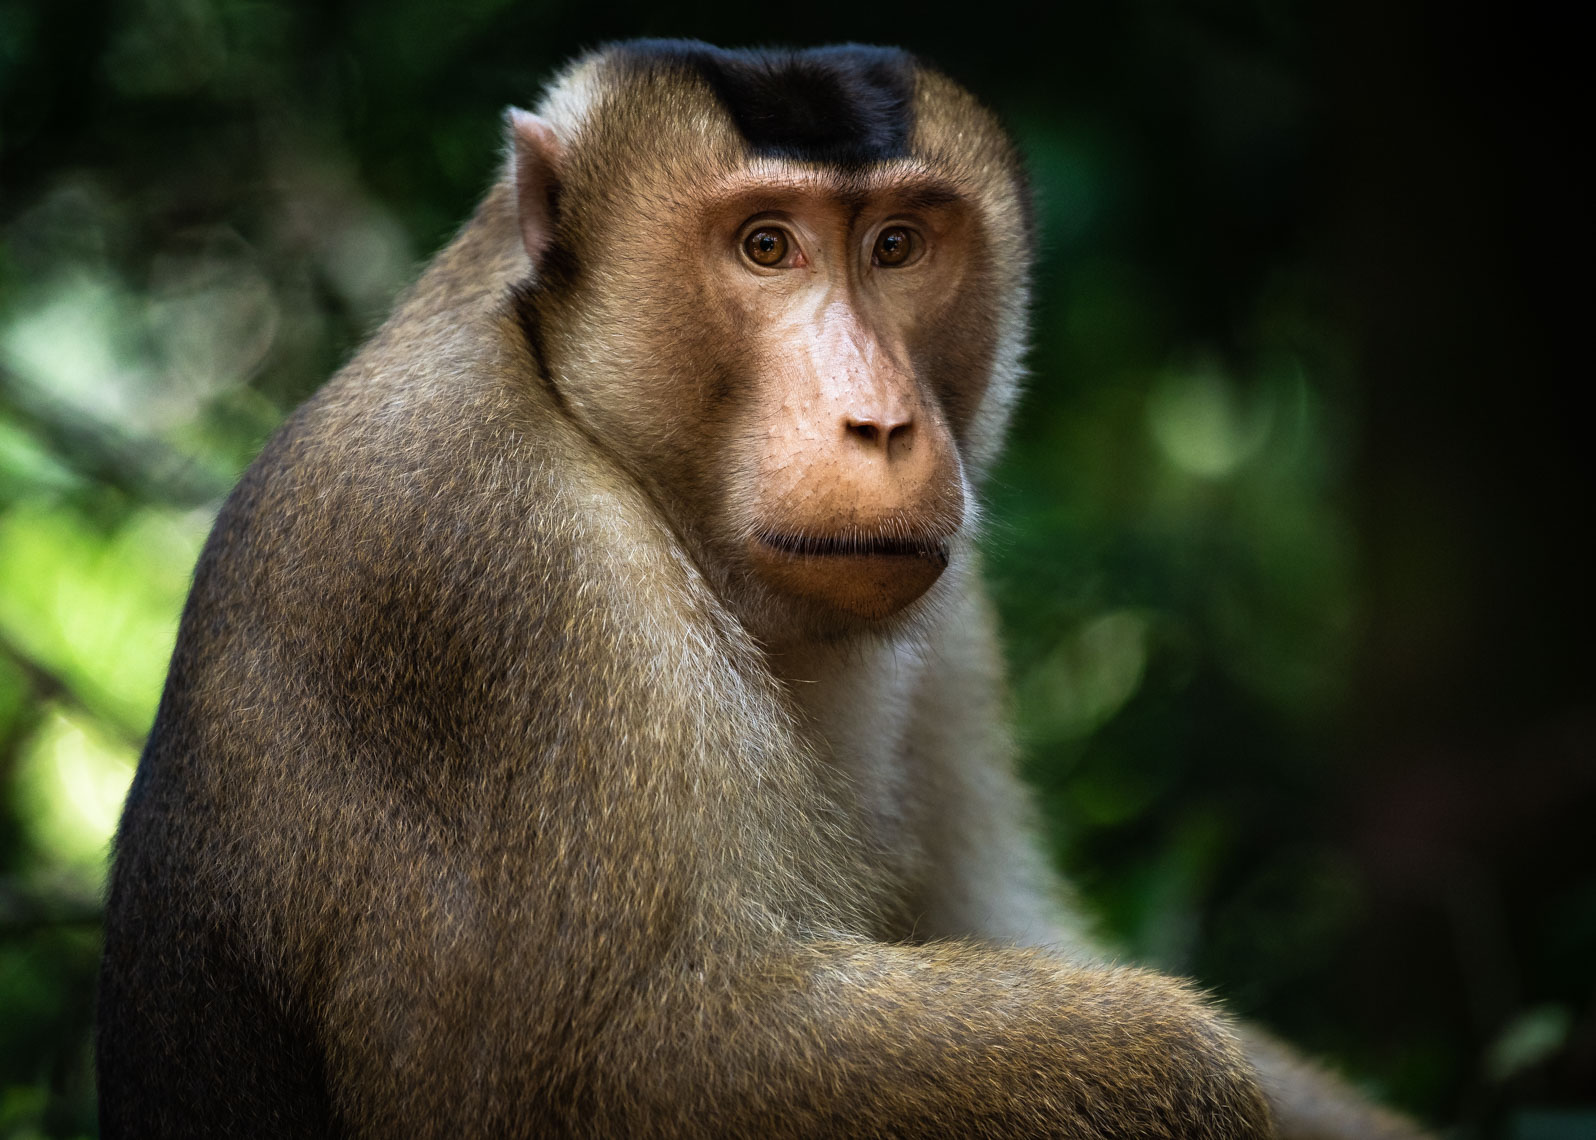 Southern pig-tailed macaque in an Indonesian rainforest